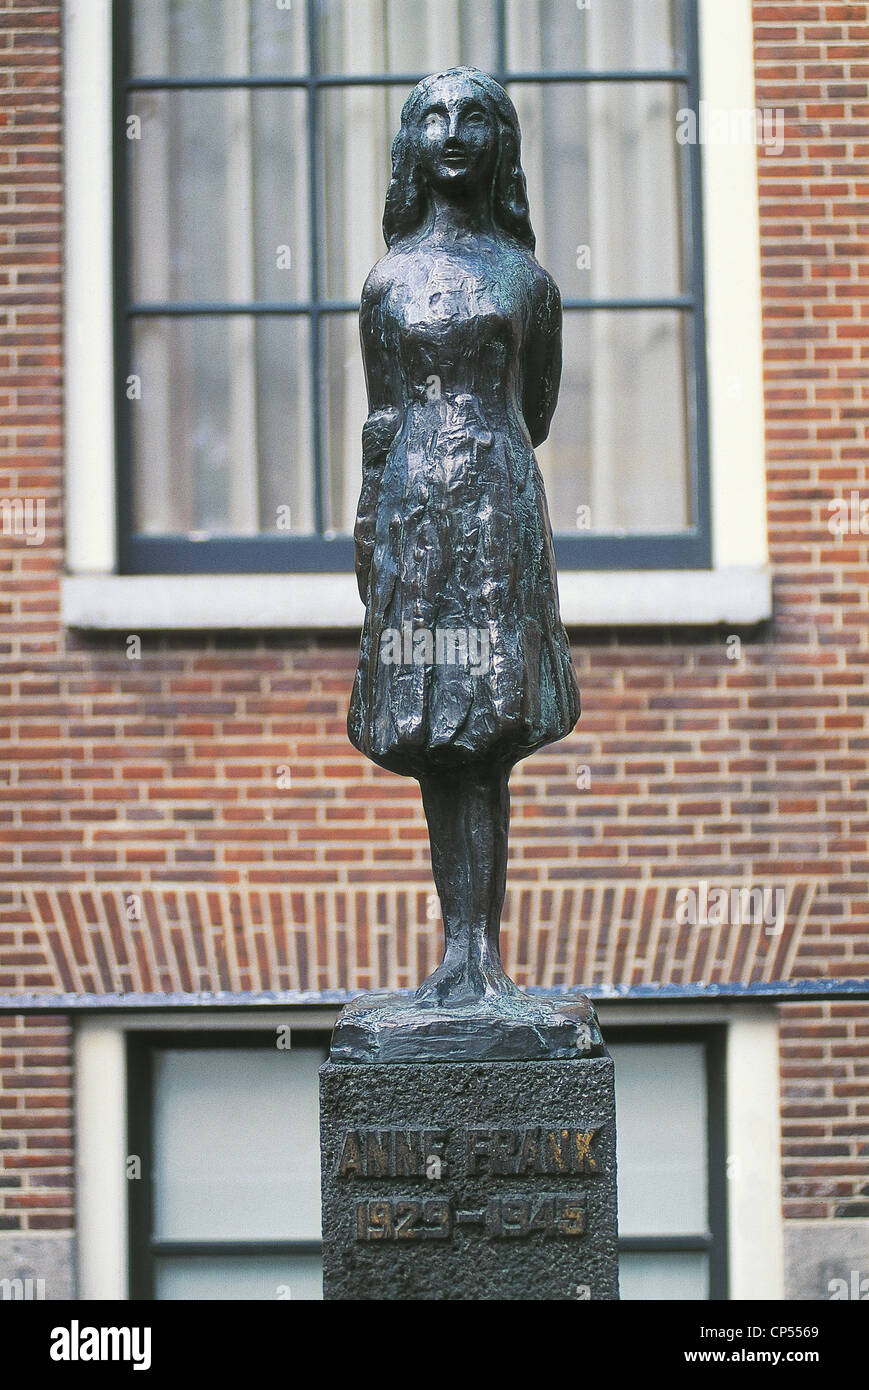 Netherlands - Amsterdam. Monument in front of the Anne Frank house in Prinsengracht 263. - Stock Image